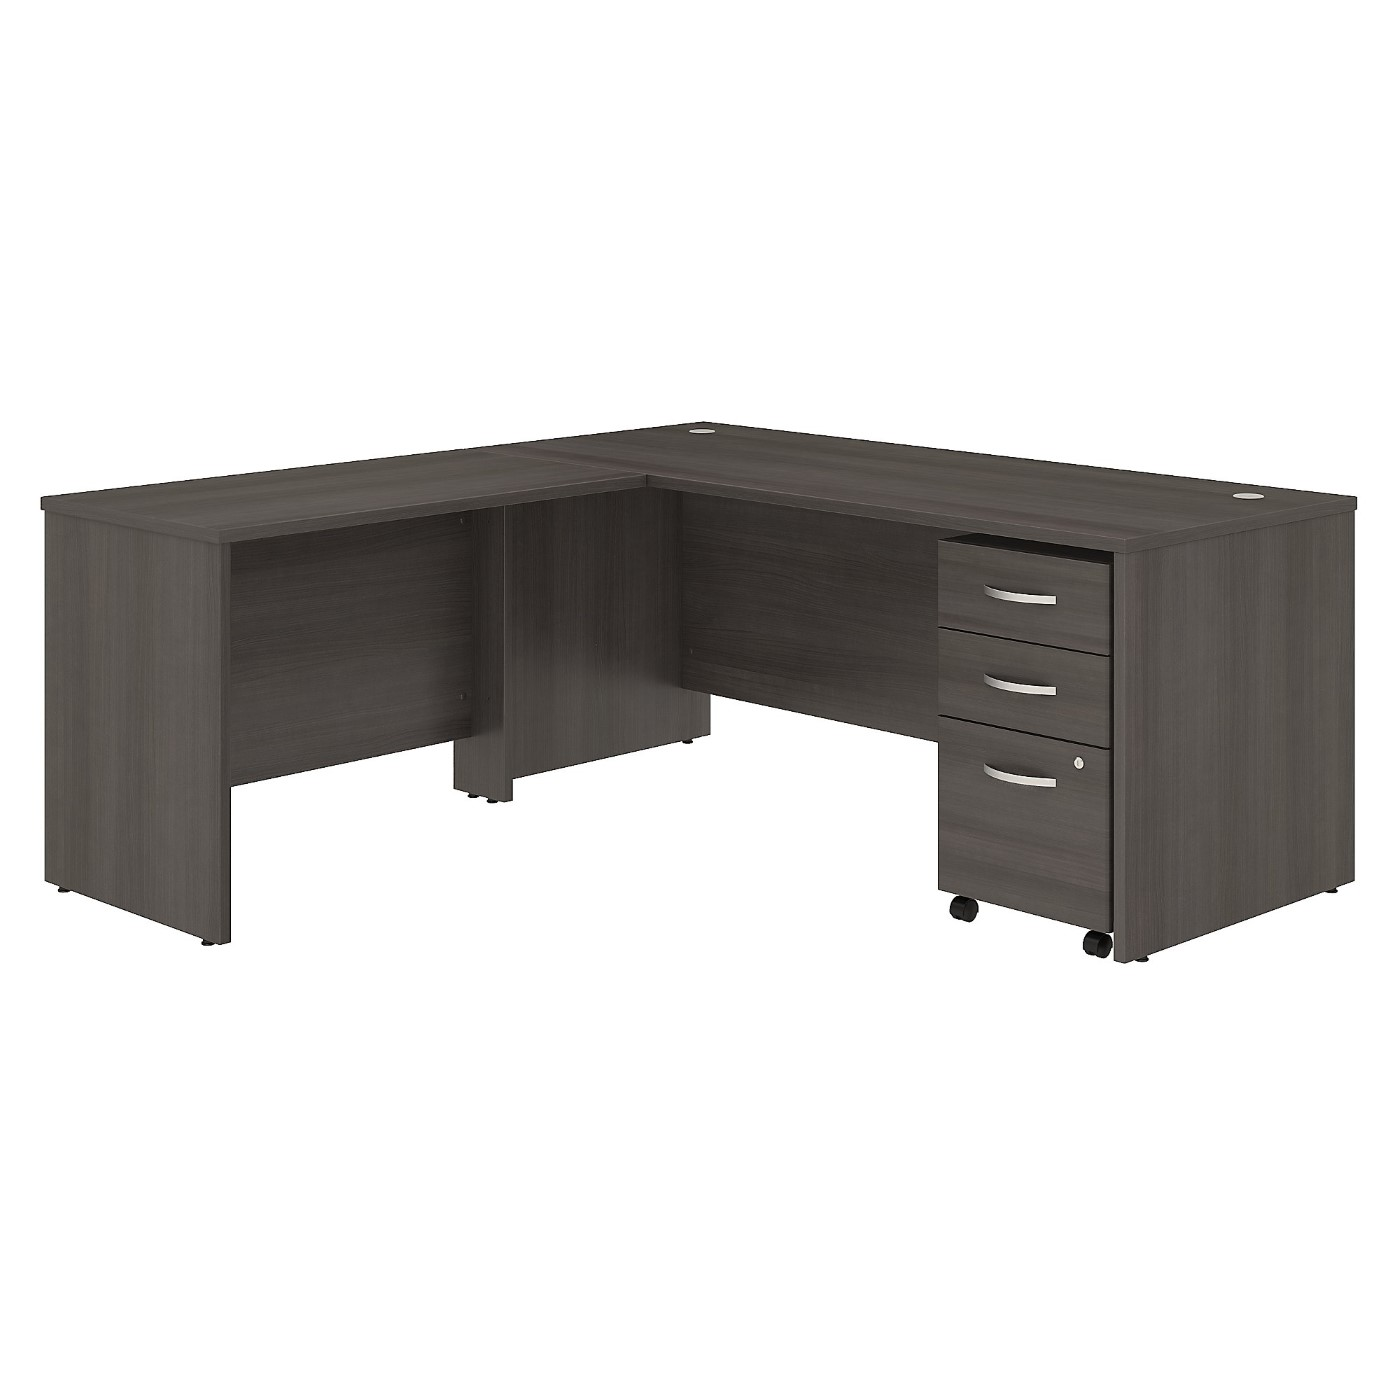 BUSH BUSINESS FURNITURE STUDIO C 72W X 30D L SHAPED DESK WITH MOBILE FILE CABINET AND 42W RETURN. FREE SHIPPING